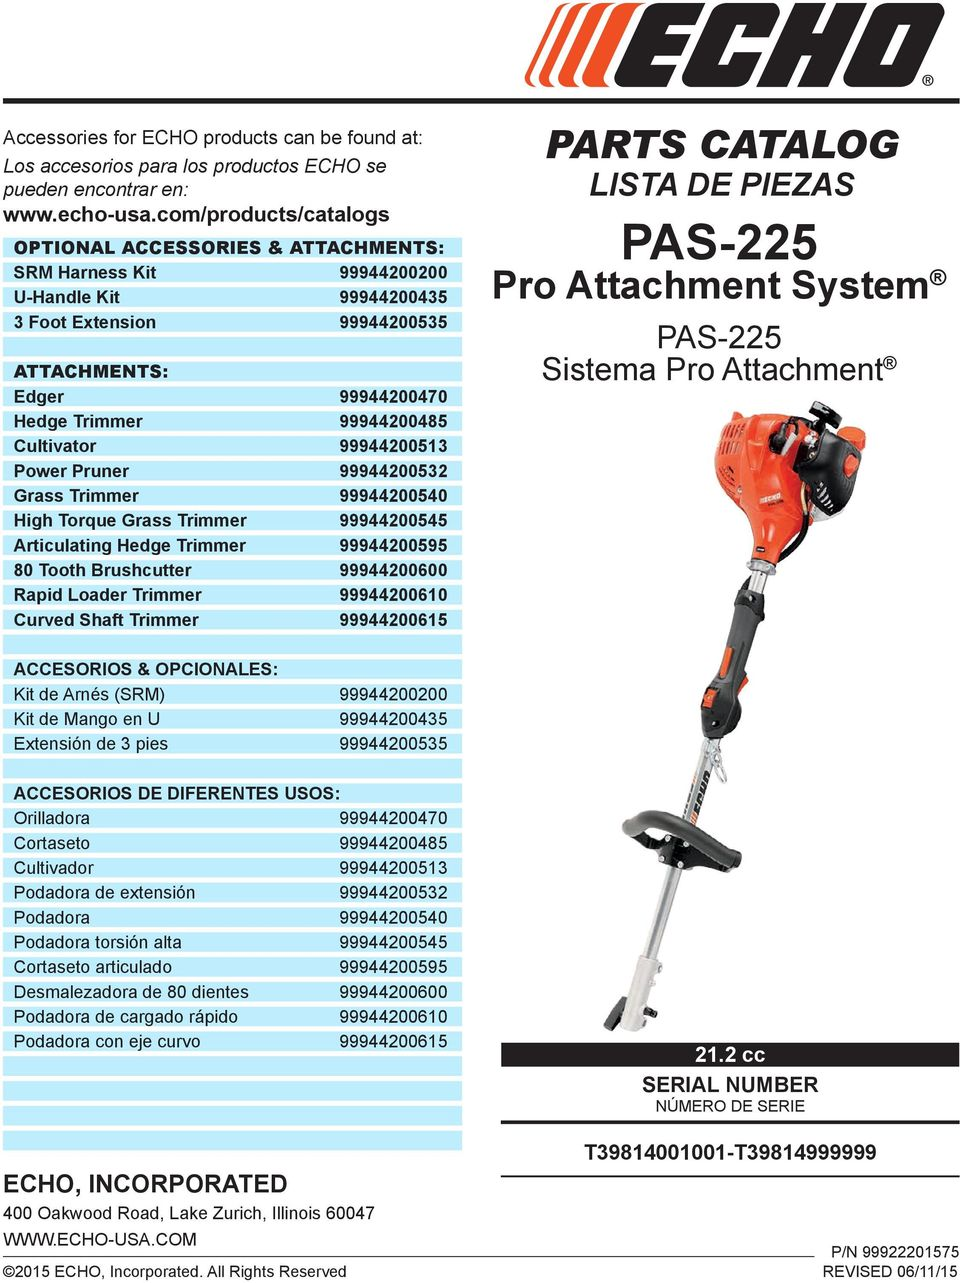 000 High Torque Grass Trimmer 00 Articulating Hedge Trimmer 00 80 Tooth Brushcutter 0000 Rapid Loader Trimmer 000 Curved Shaft Trimmer 00 PARTS CATALOG LISTA DE PIEZAS PAS- Pro Attachment System PAS-